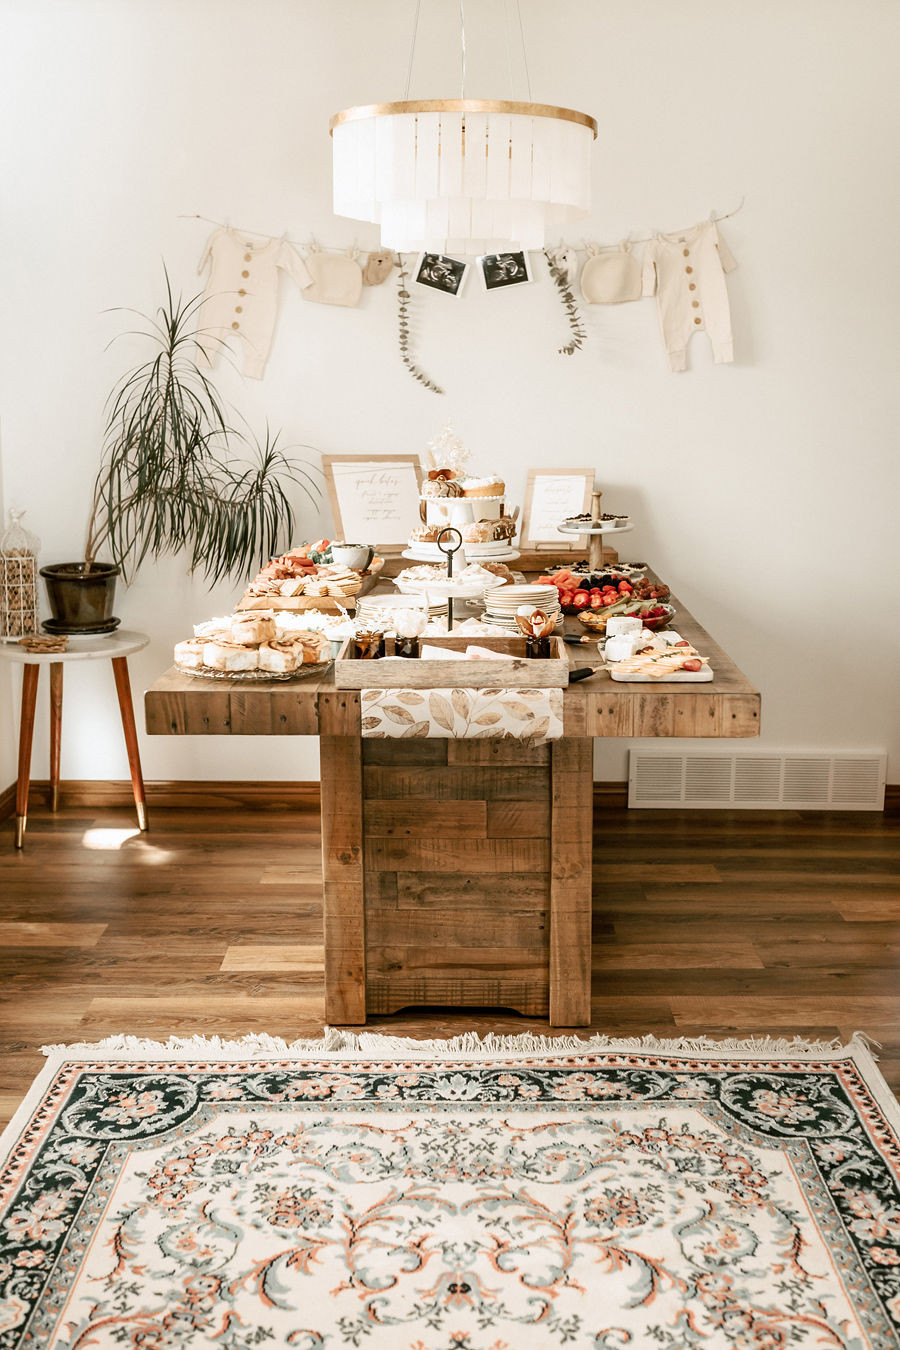 A large rustic wooden table at a boho baby shower displays a collection of appetizers and beautiful desserts beneath a white chandelier.